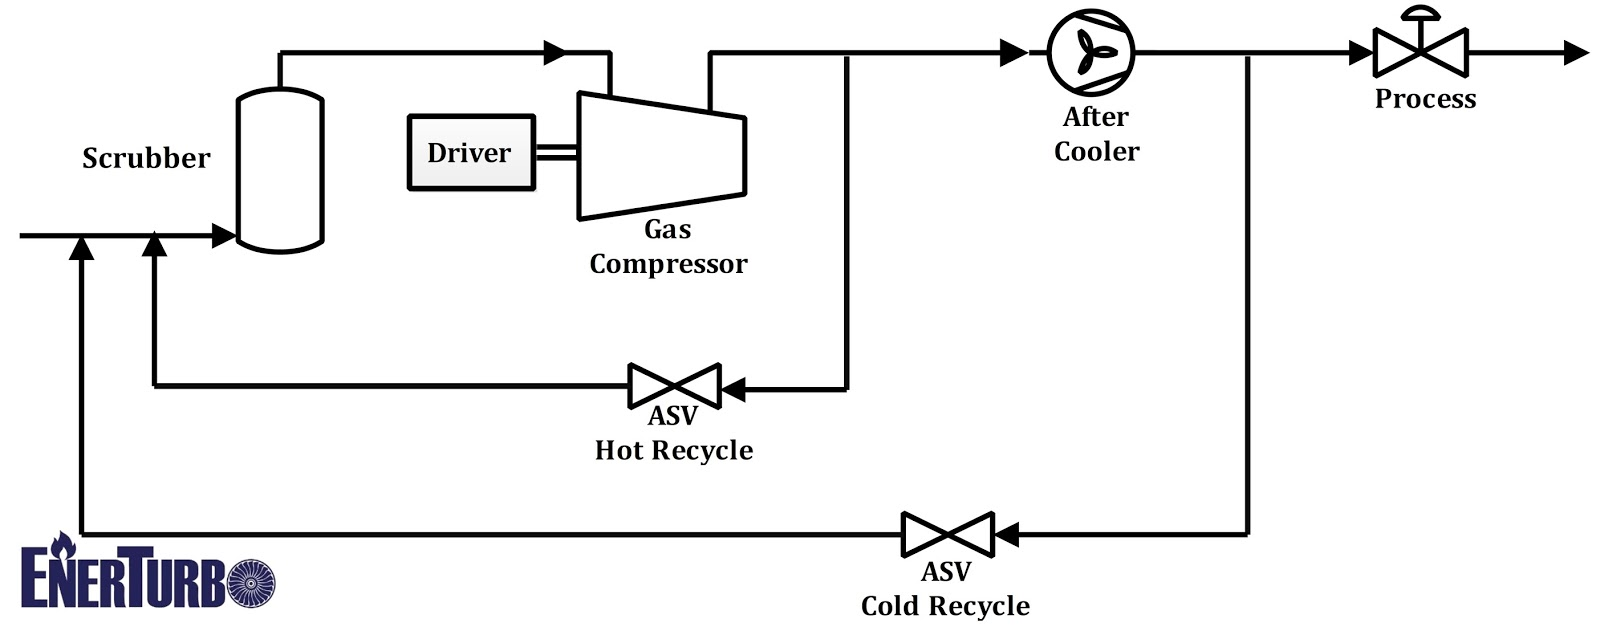 natural gas compressor station diagram